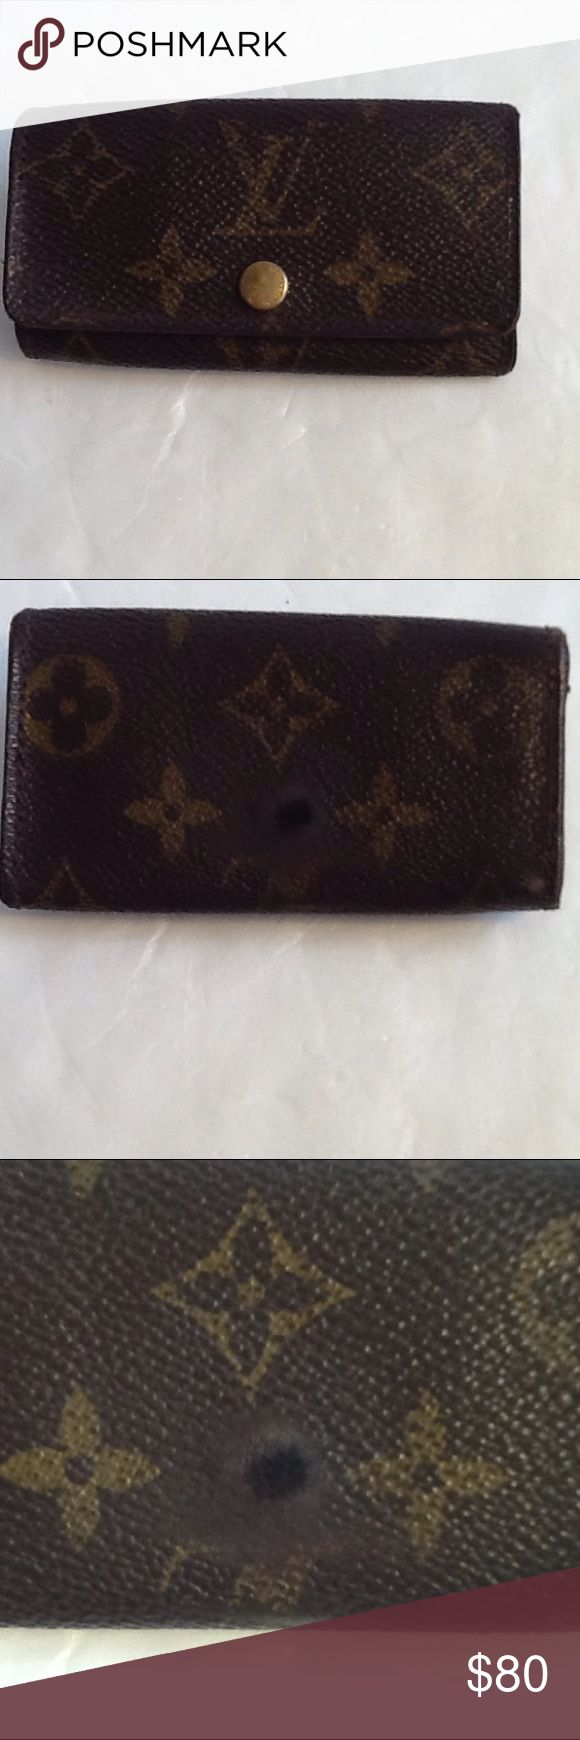 Authentic Louis Vuitton Monogram Key Chain Wallet. Canvas had sone cracks. The wallet made in France with a date code AR 1011. The dimension is 4, 2 and 1. Louis Vuitton Accessories